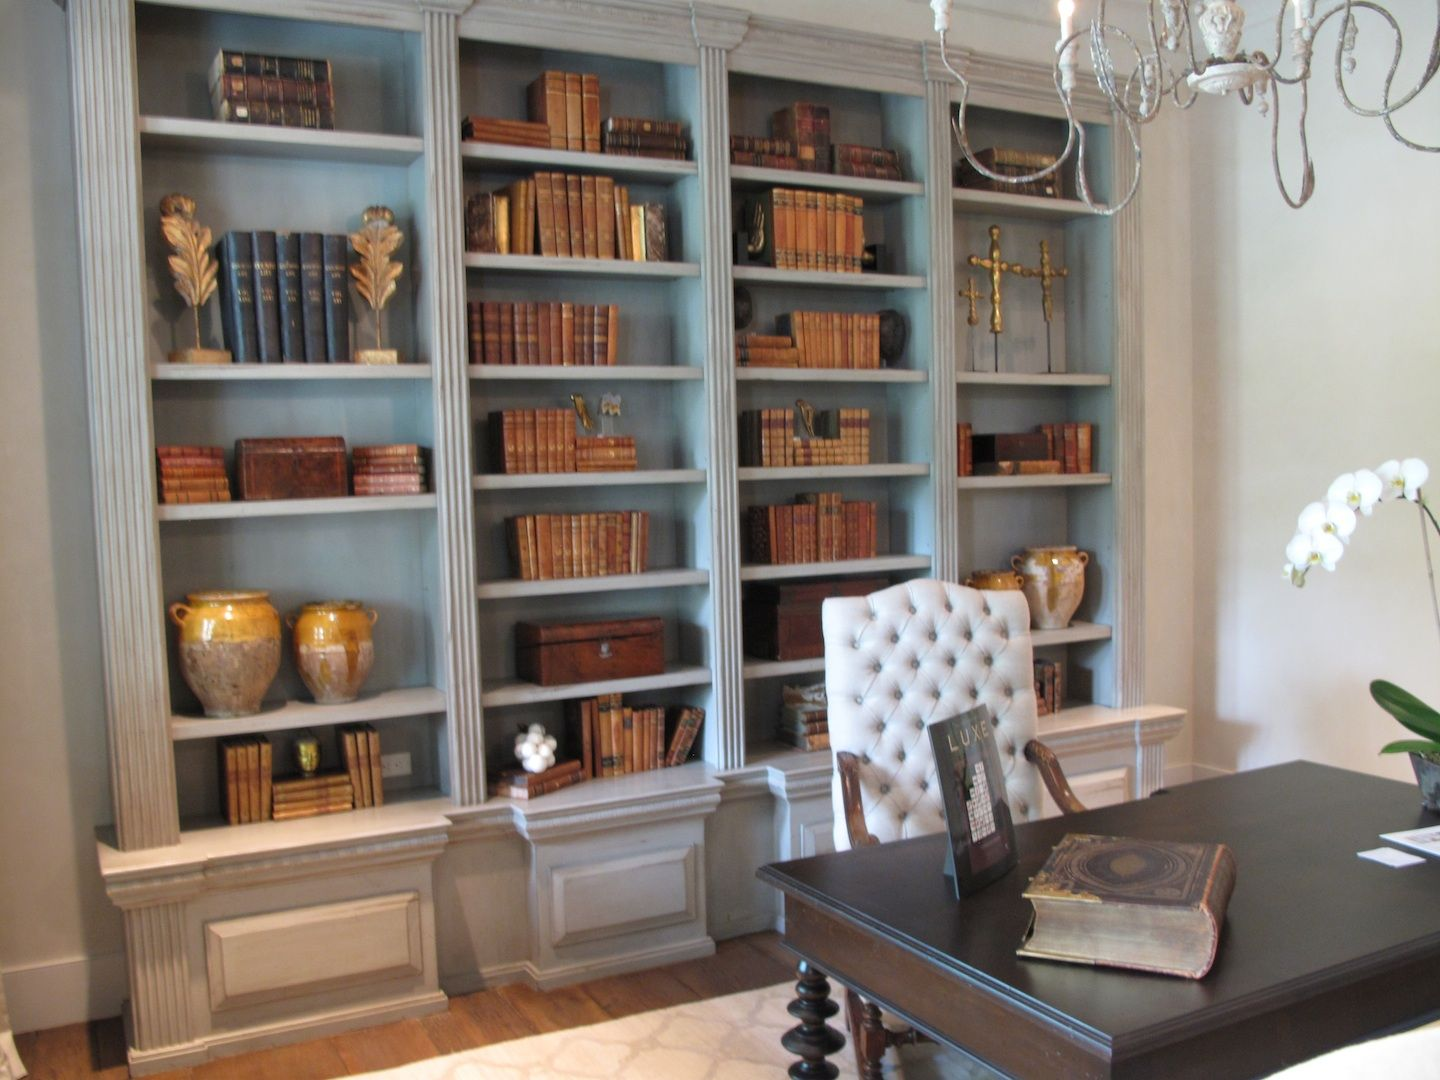 shelf detail | Built-Ins/TV/Media | Pinterest | Antique chandelier ...